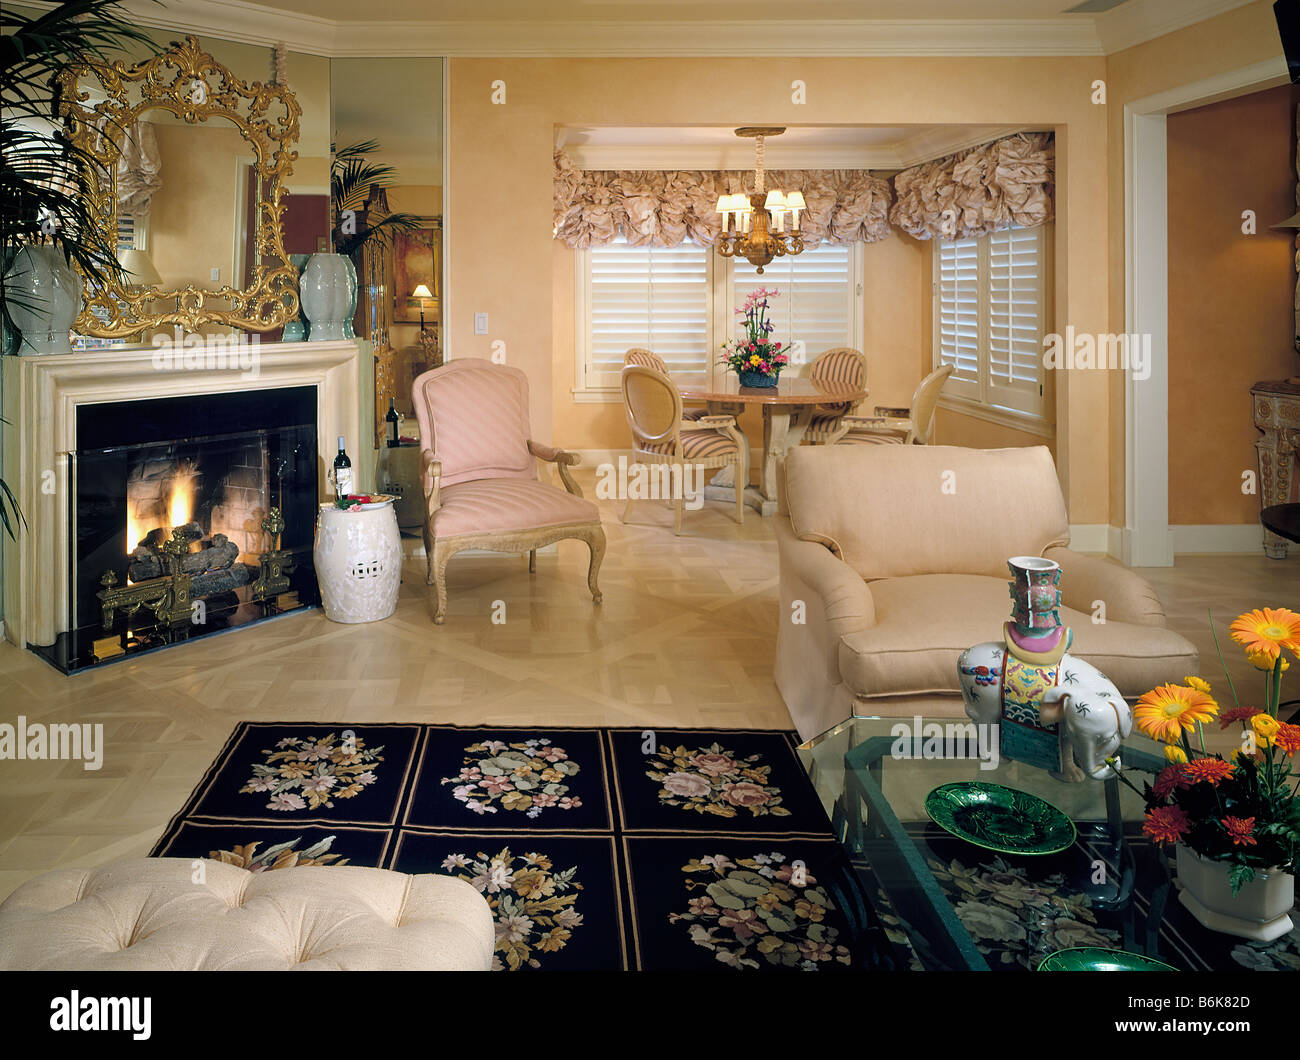 Beverly Hills Hotel Bungalow California Architectural Interior Stock Photo Royalty Free Image